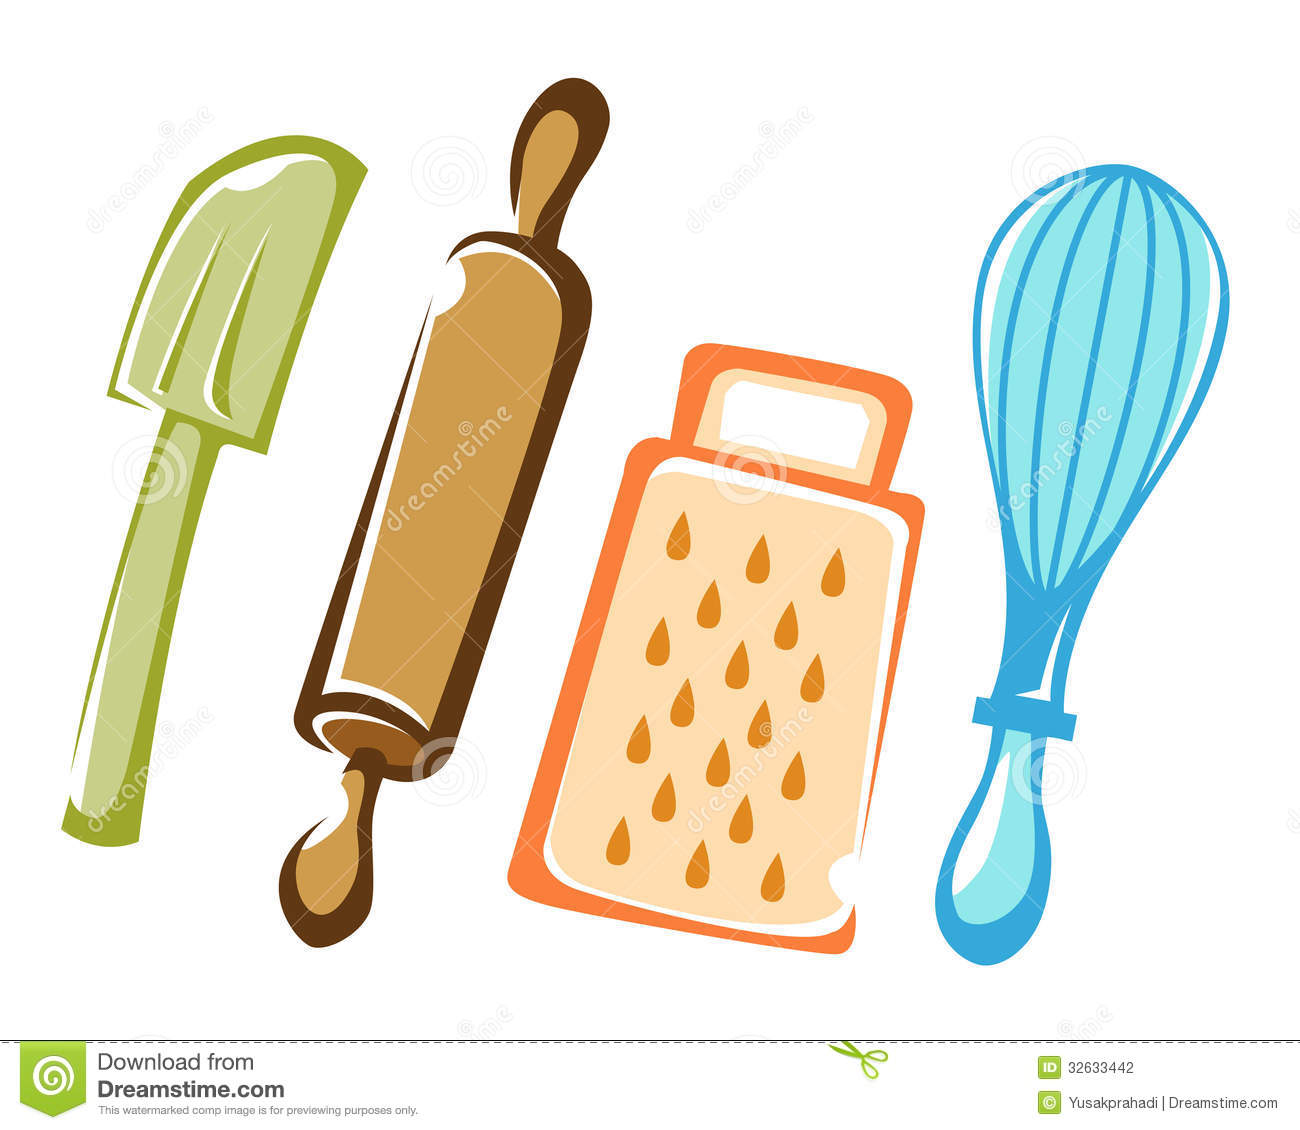 Chef utensils clipart graphic black and white Cooking Utensils Clipart | Free download best Cooking Utensils ... graphic black and white